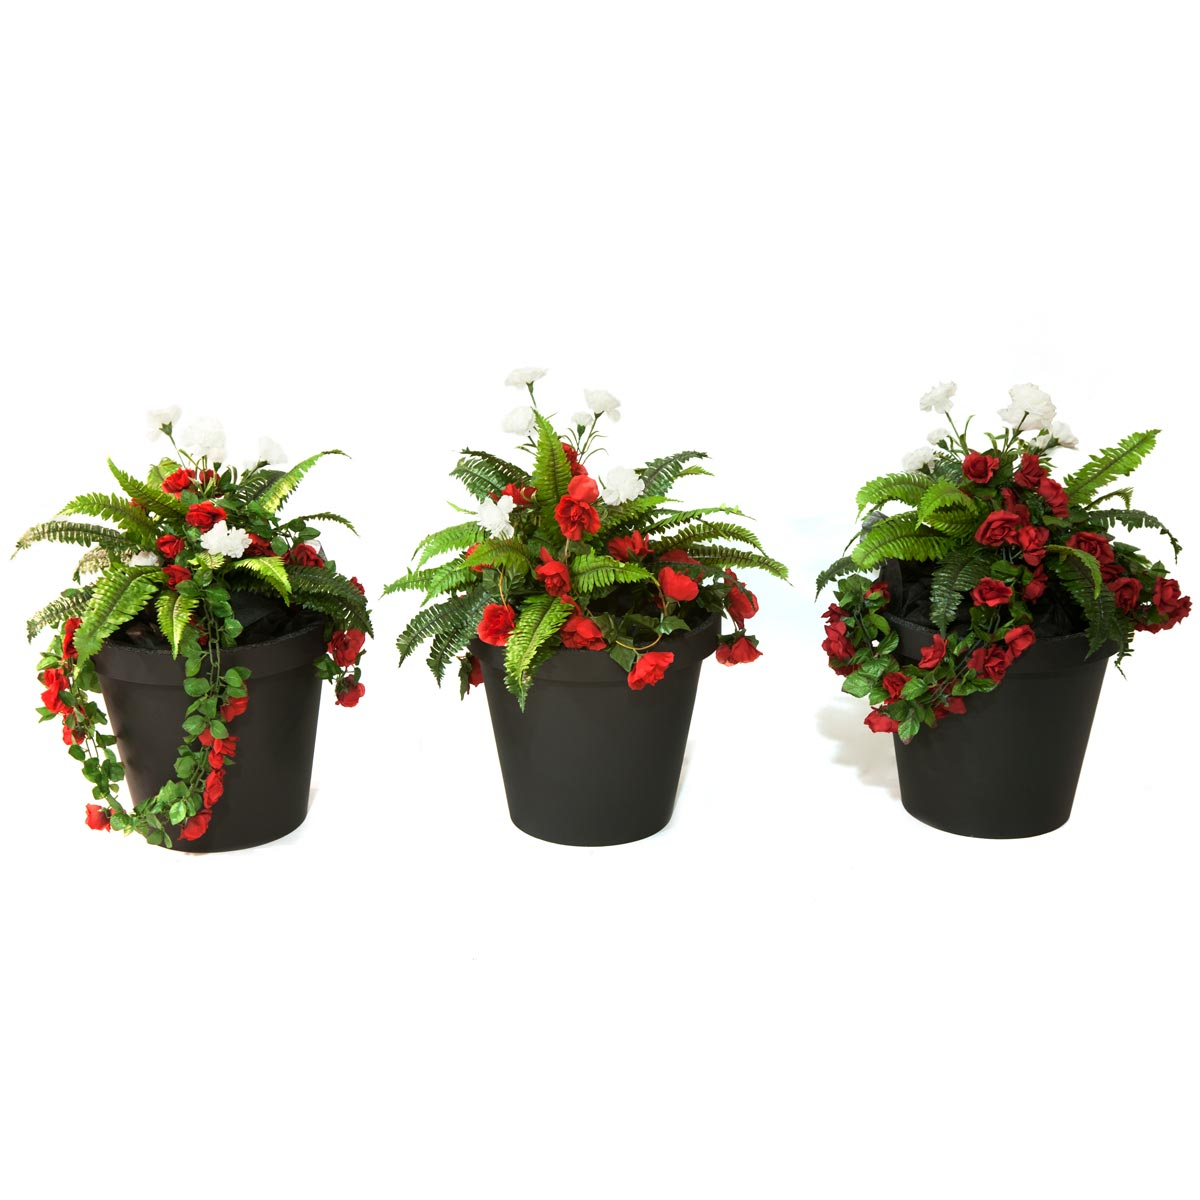 French Rose Planters (set of 3)